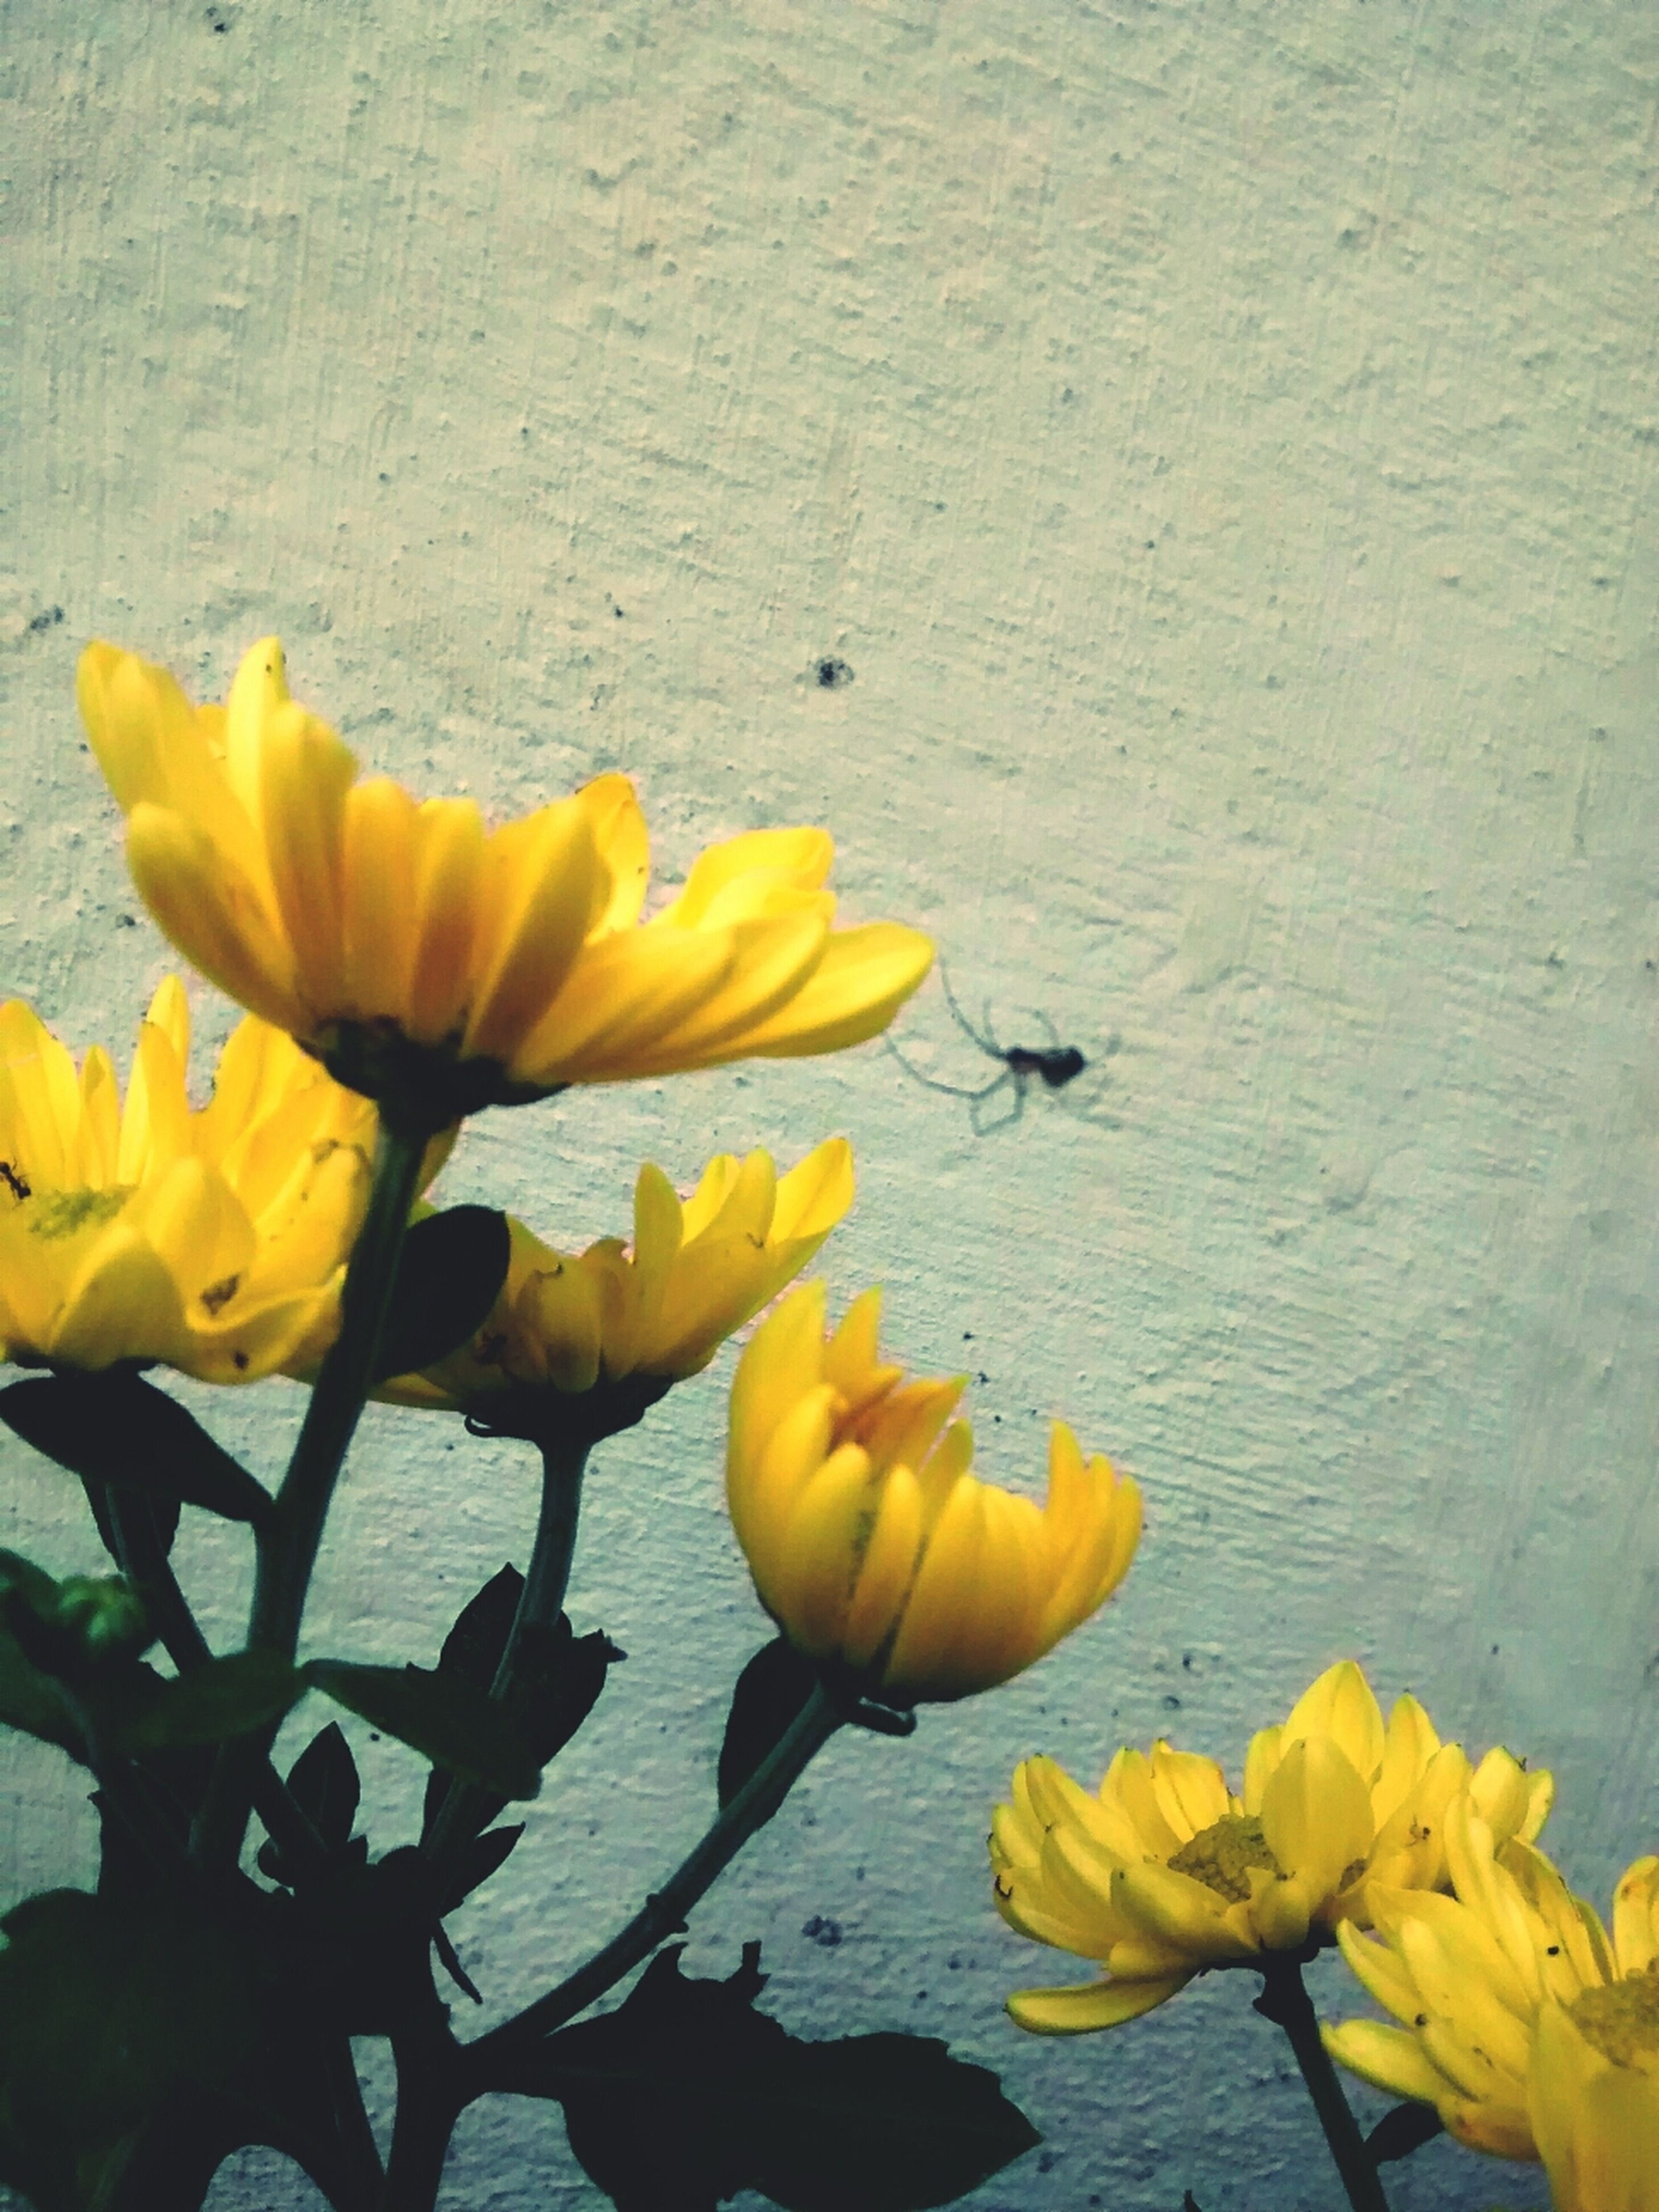 flower, yellow, petal, freshness, fragility, flower head, plant, leaf, growth, blooming, stem, nature, beauty in nature, wall - building feature, close-up, in bloom, day, tulip, no people, outdoors